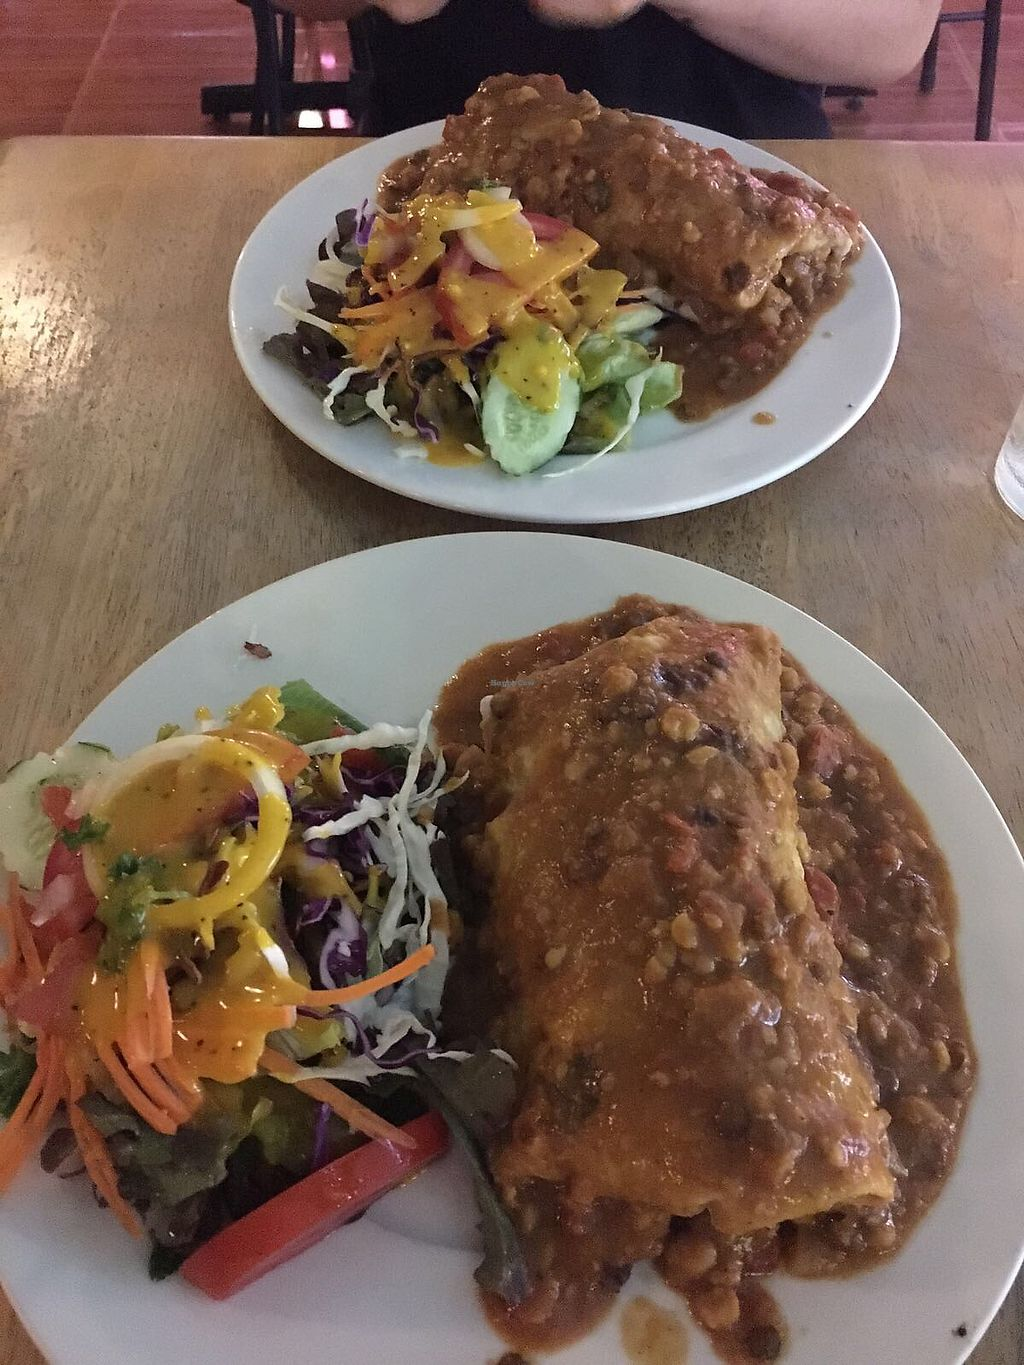 "Photo of Cat House Chiang Mai  by <a href=""/members/profile/katiechiamia"">katiechiamia</a> <br/>Lentil burrito with tofu  <br/> November 1, 2017  - <a href='/contact/abuse/image/31314/320814'>Report</a>"